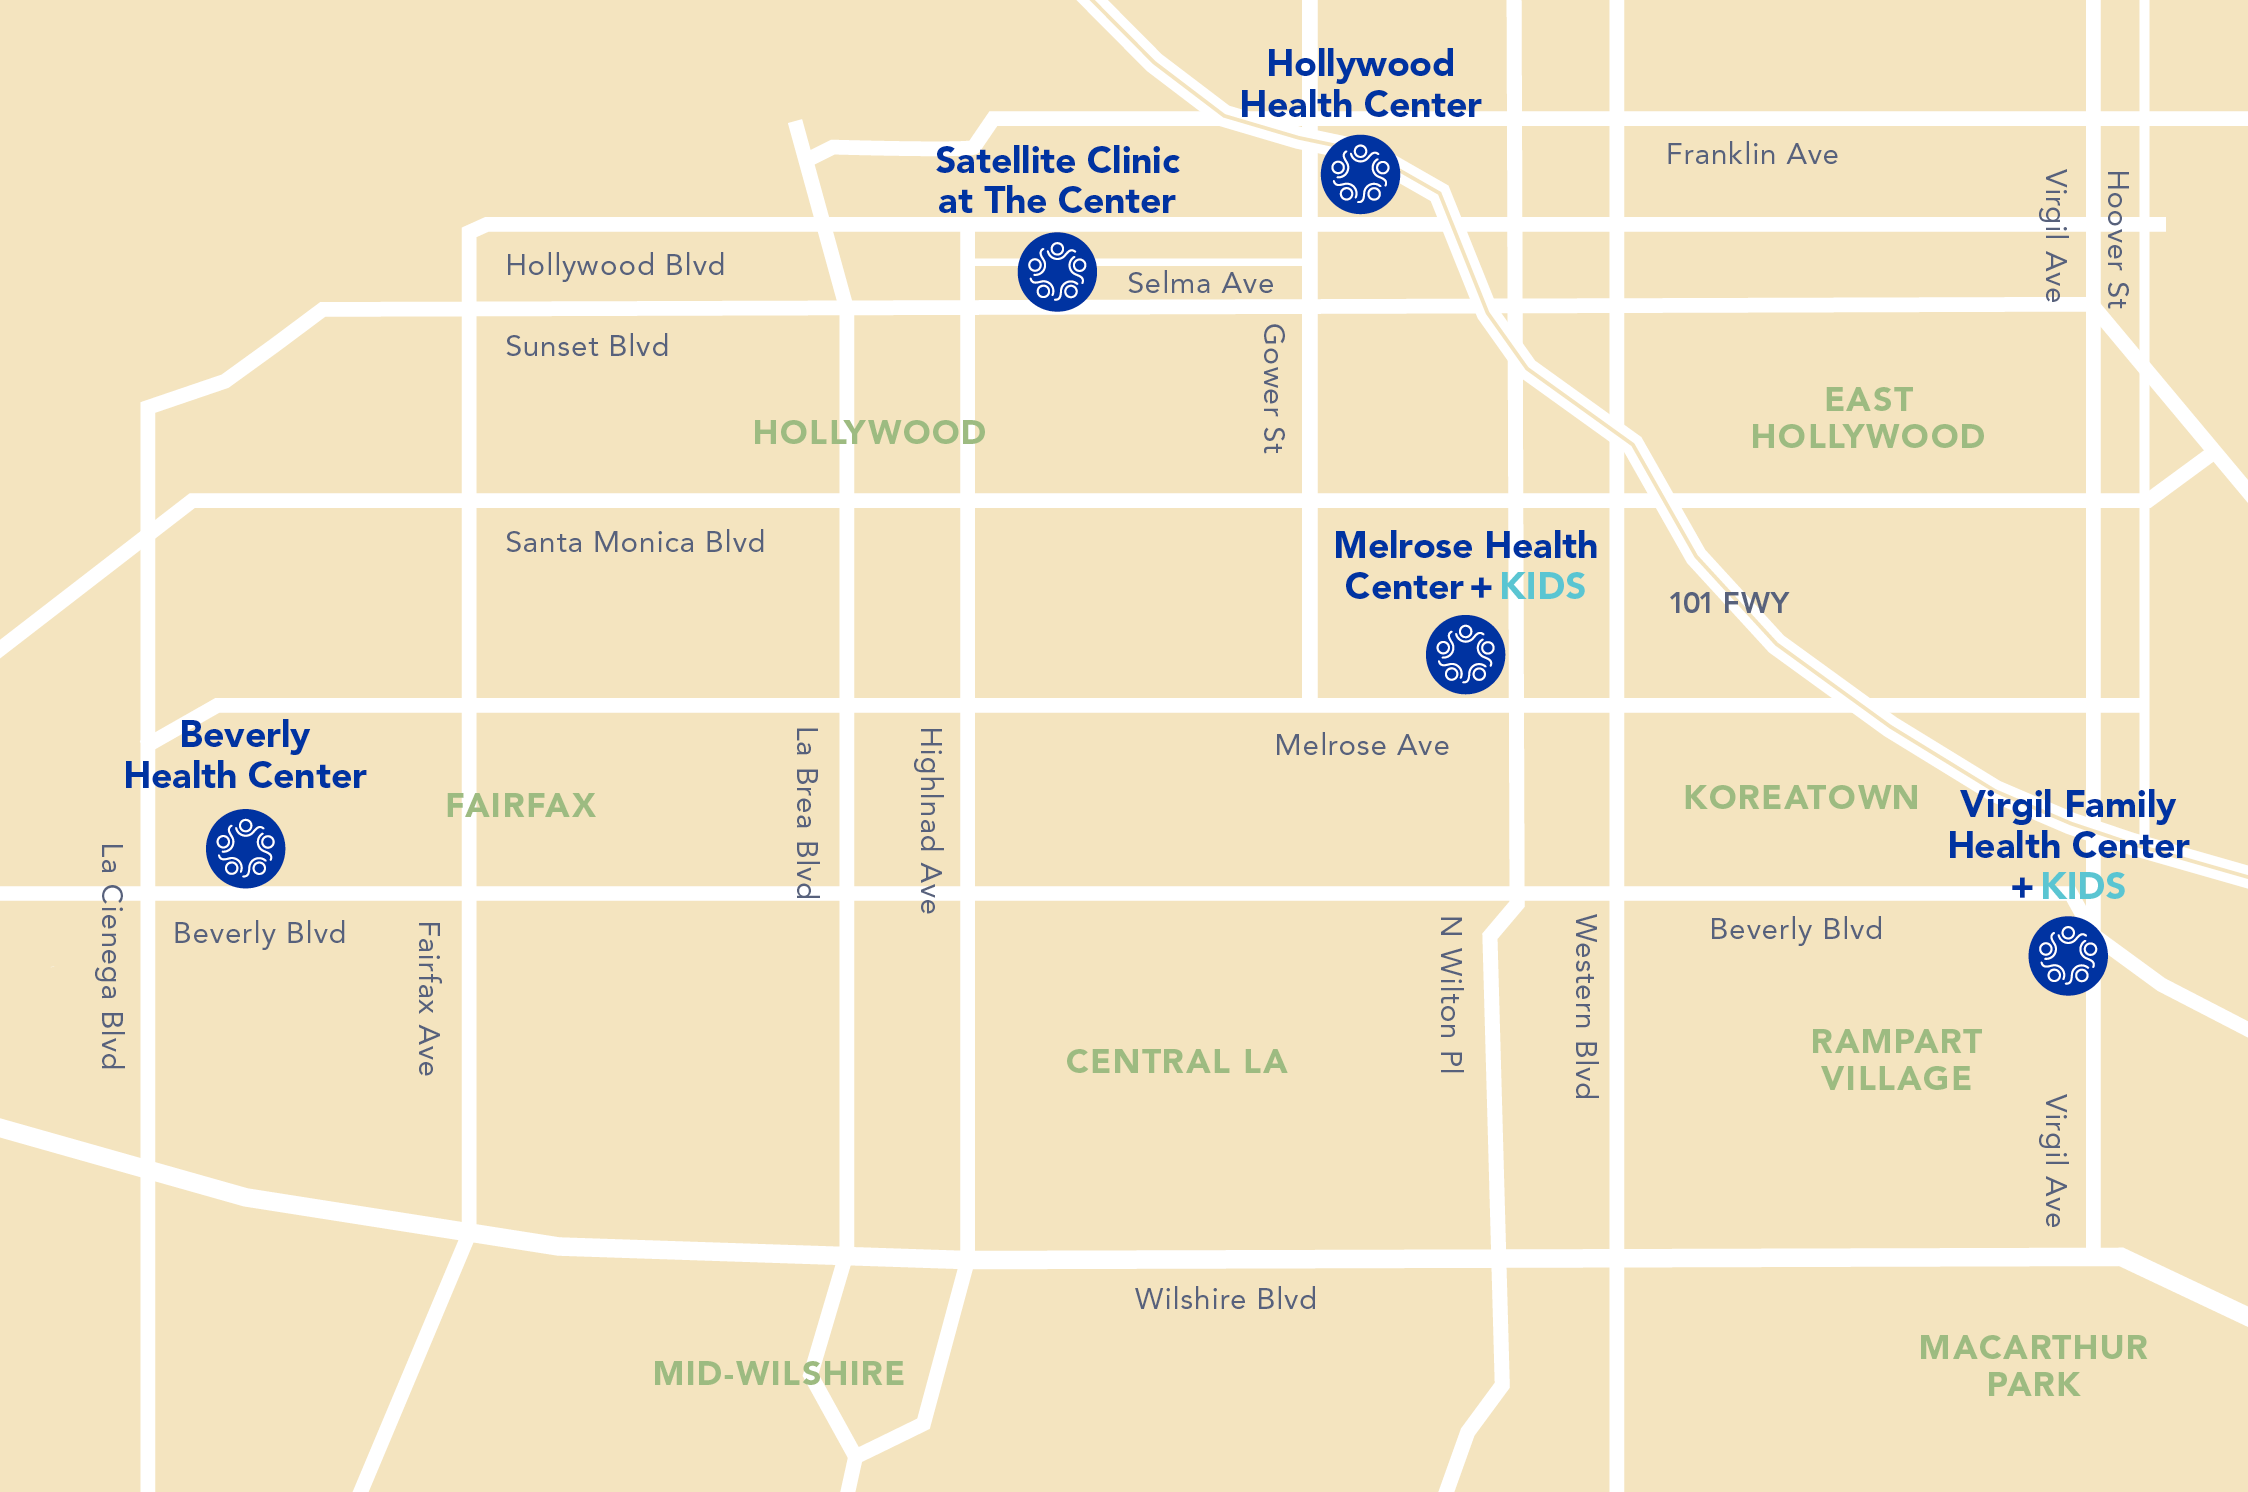 Saban Community Clinic has 5 locations in Los Angeles.